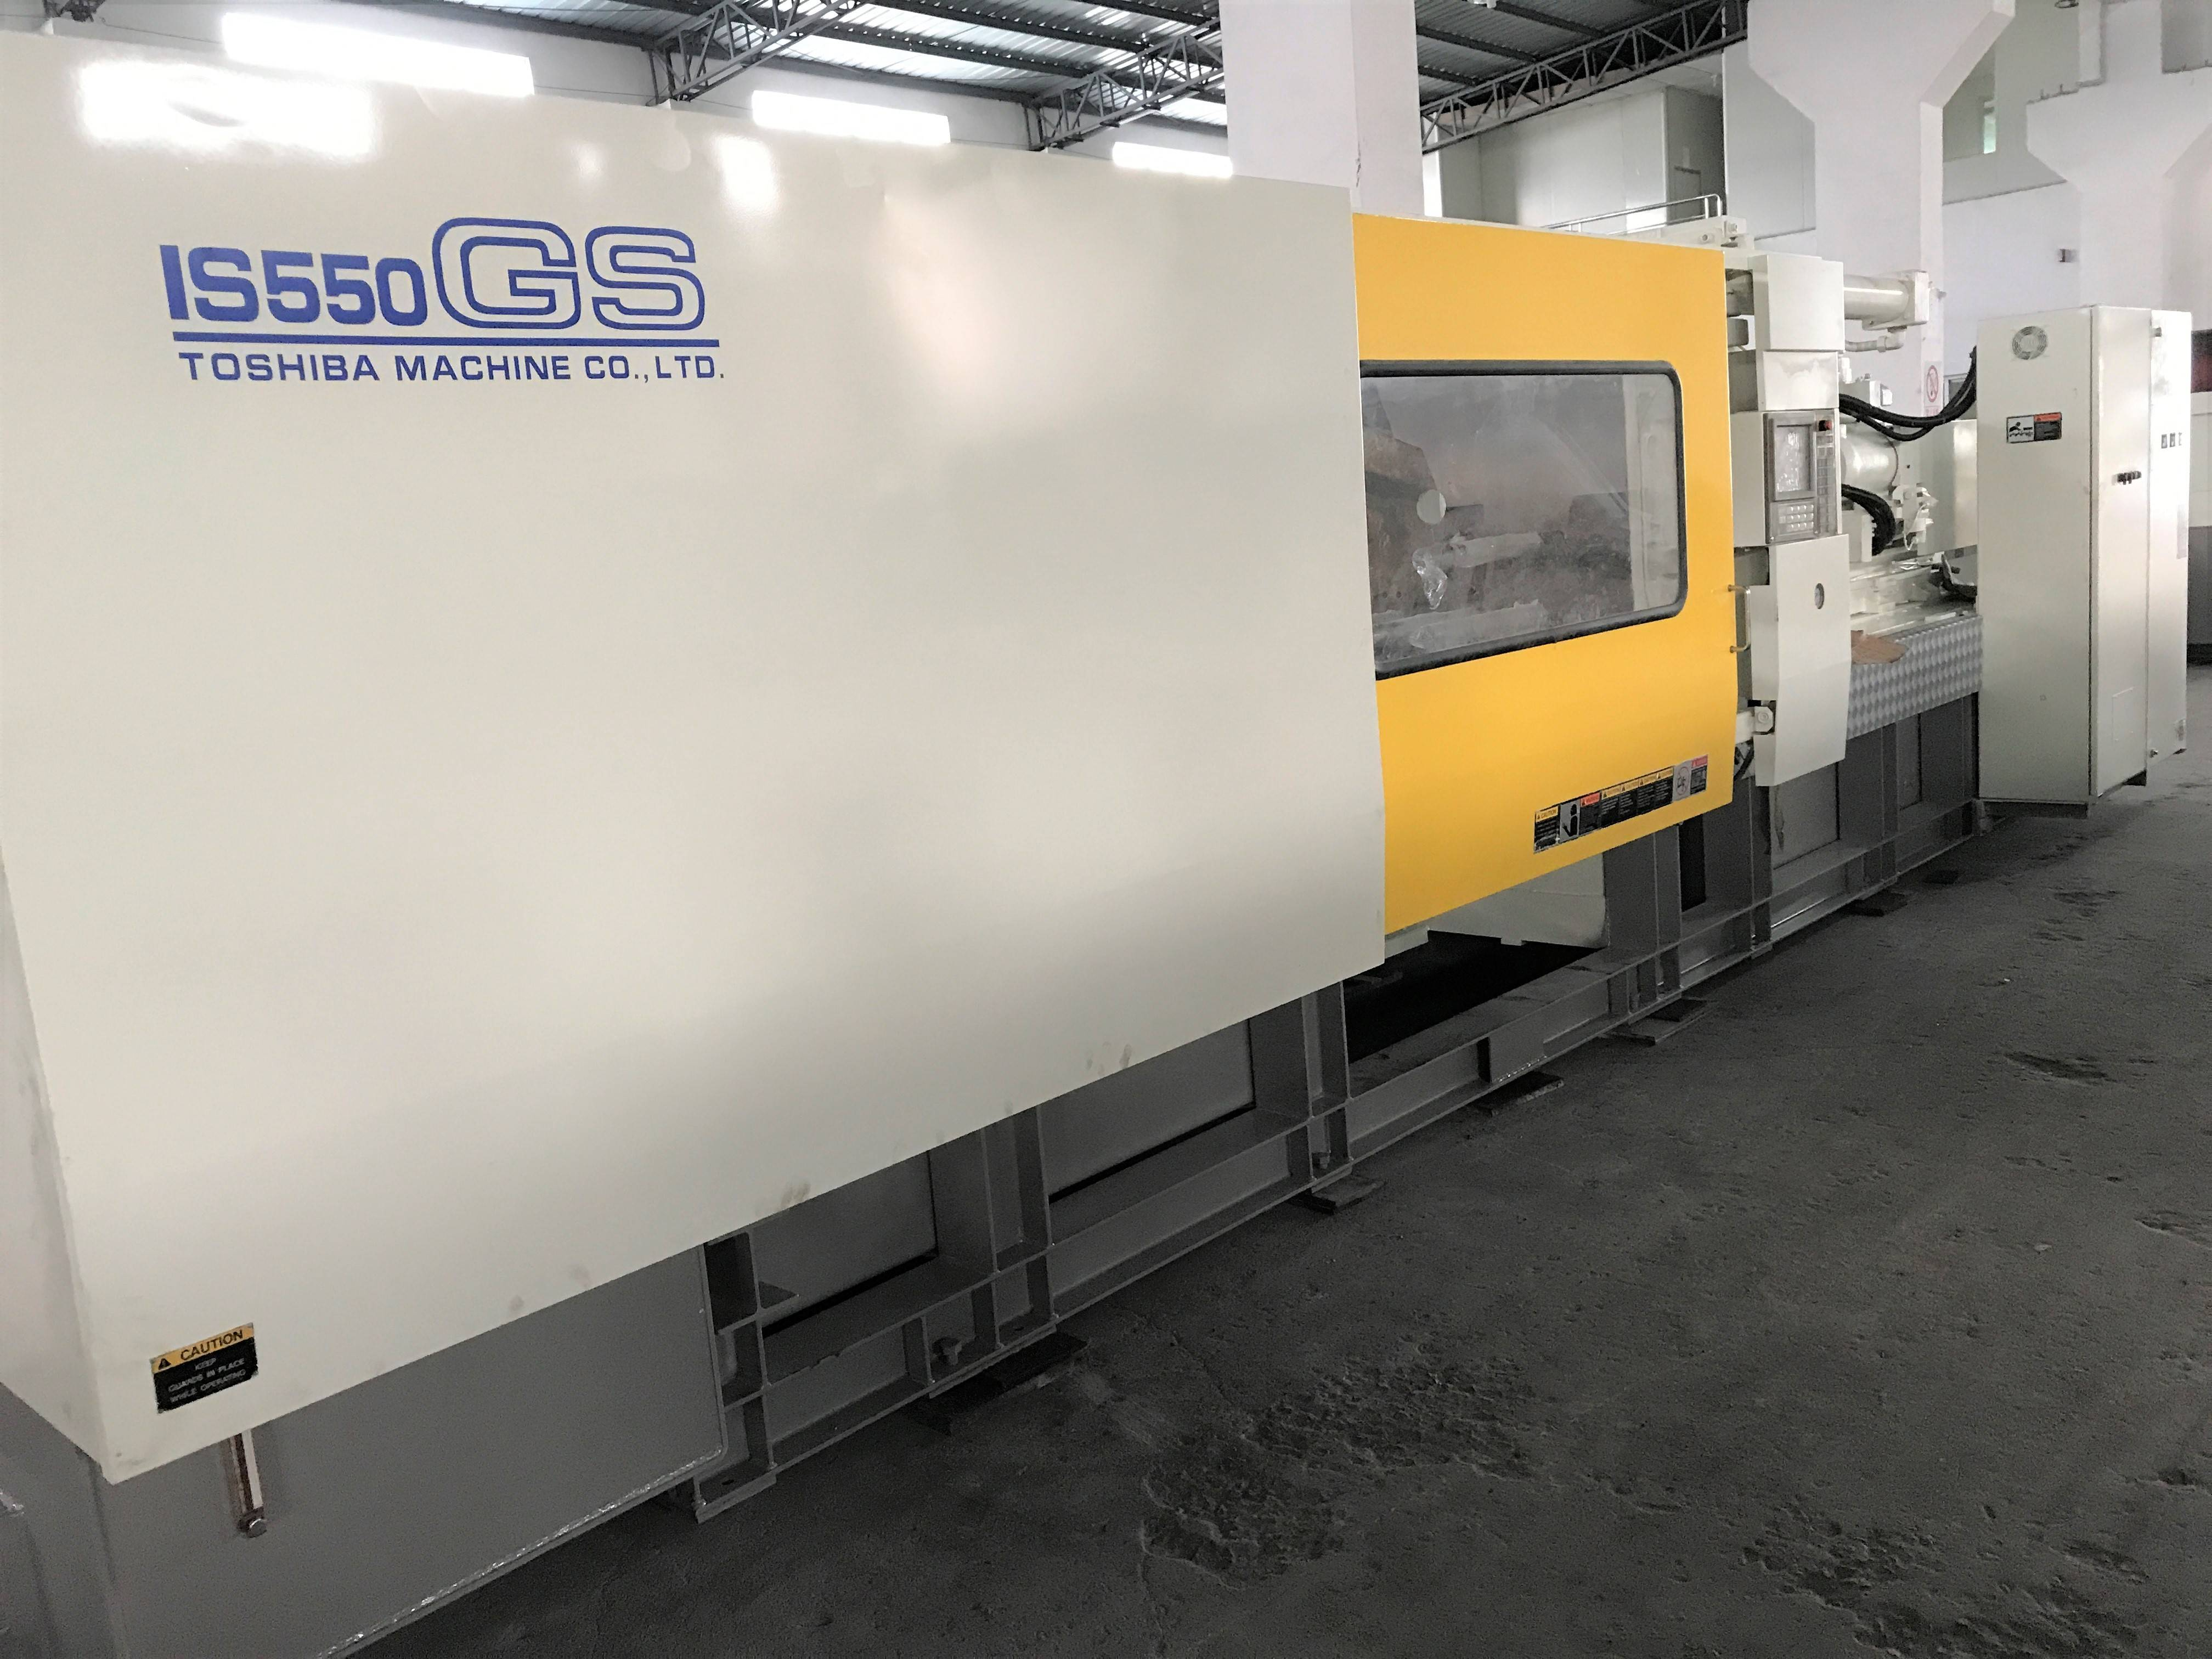 Toshiba 550t (IS550GS) year 2009 used Injection Molding Machine Featured Image